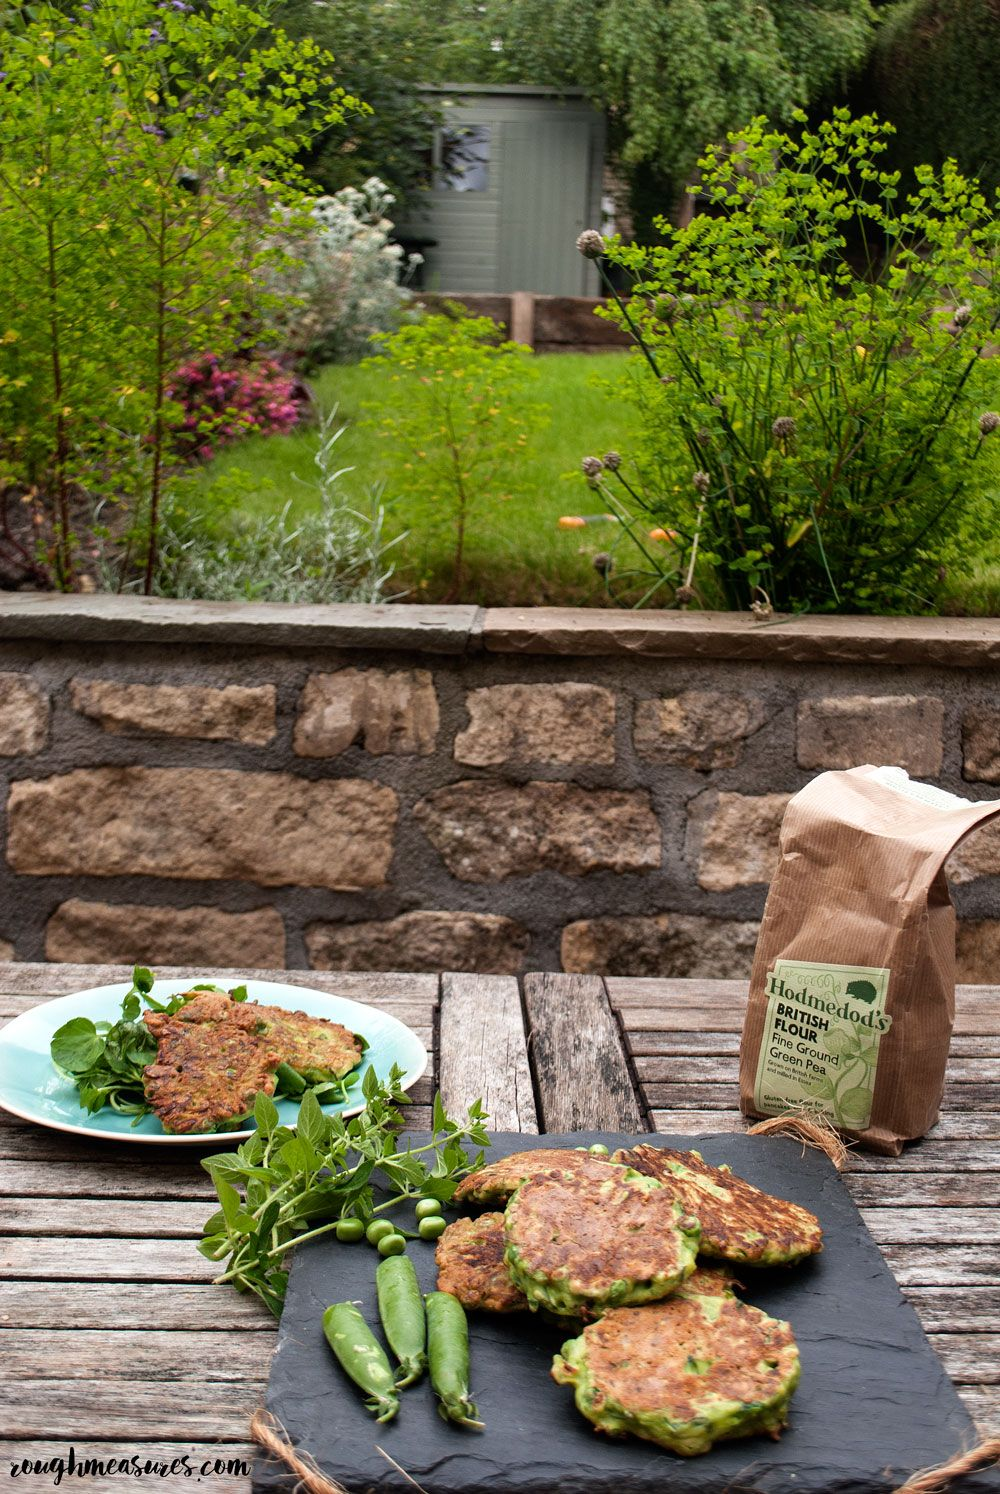 Courgette, Pea and Mint Fritters with Hodmedod's pea flour // roughmeasures.com